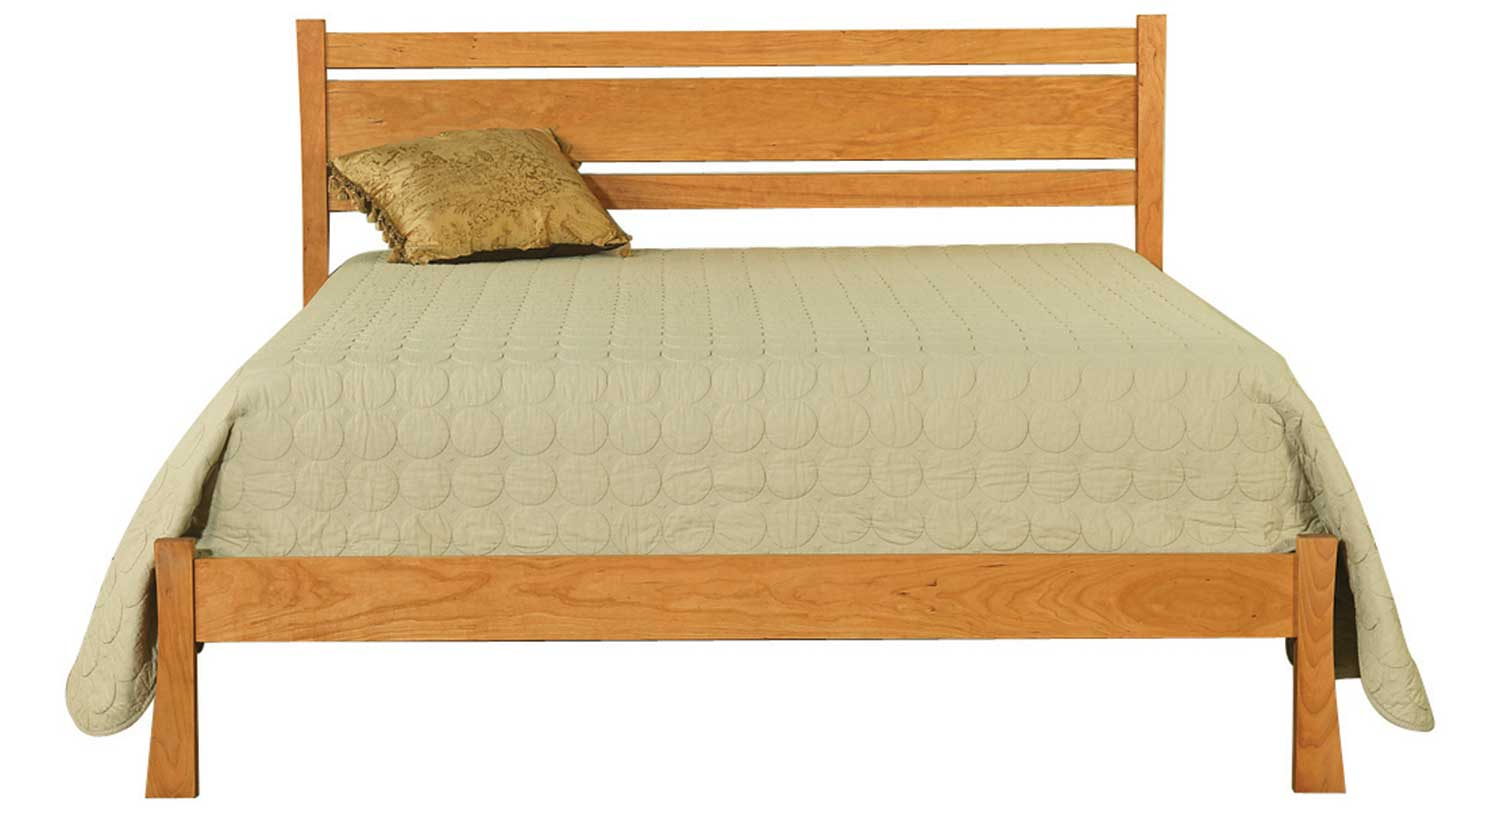 Circle Furniture - Horizon Bed  Solid Wood Beds Ma  Circle Furniture